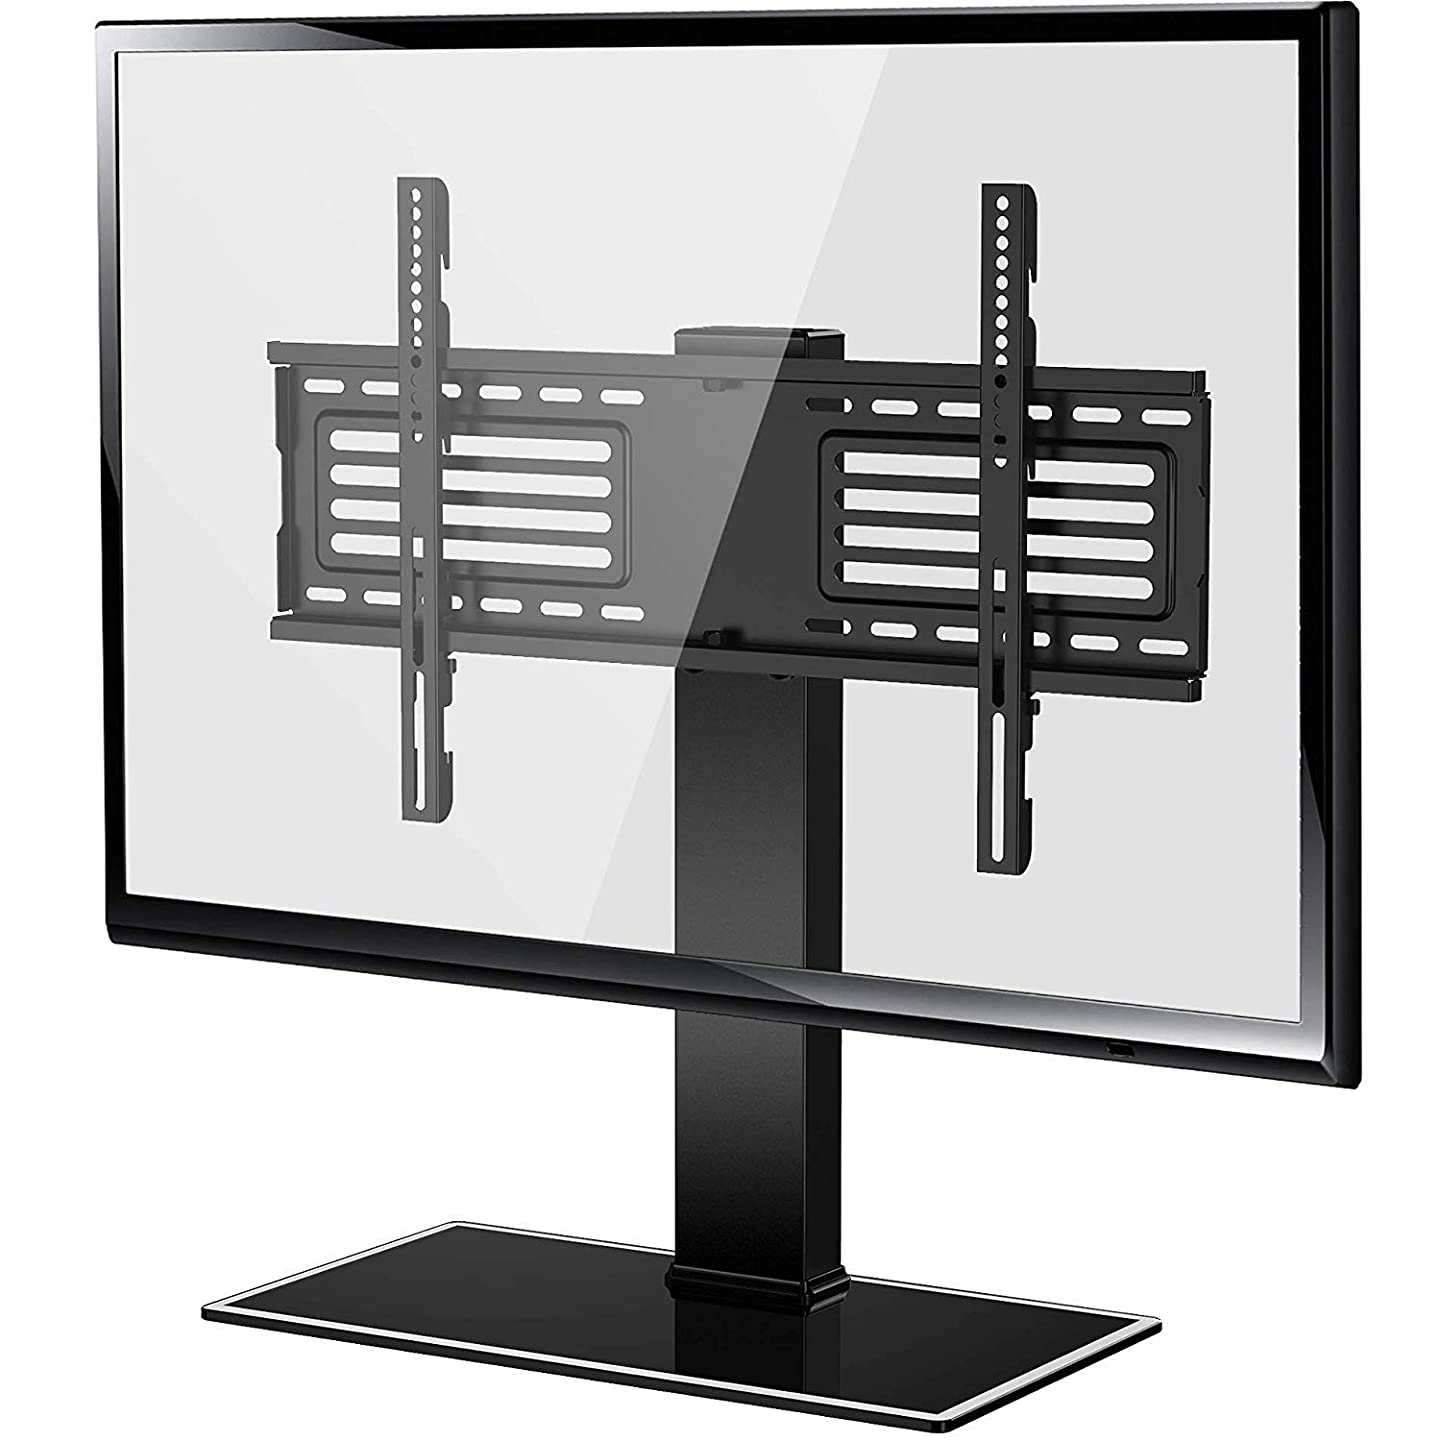 FITUEYES Universal TV Stand with Swivel Mount for 32 inch to 65 inch Flat Screen Tvs Xbox One tv Componentand Height Adjustable Black FTT105001GB